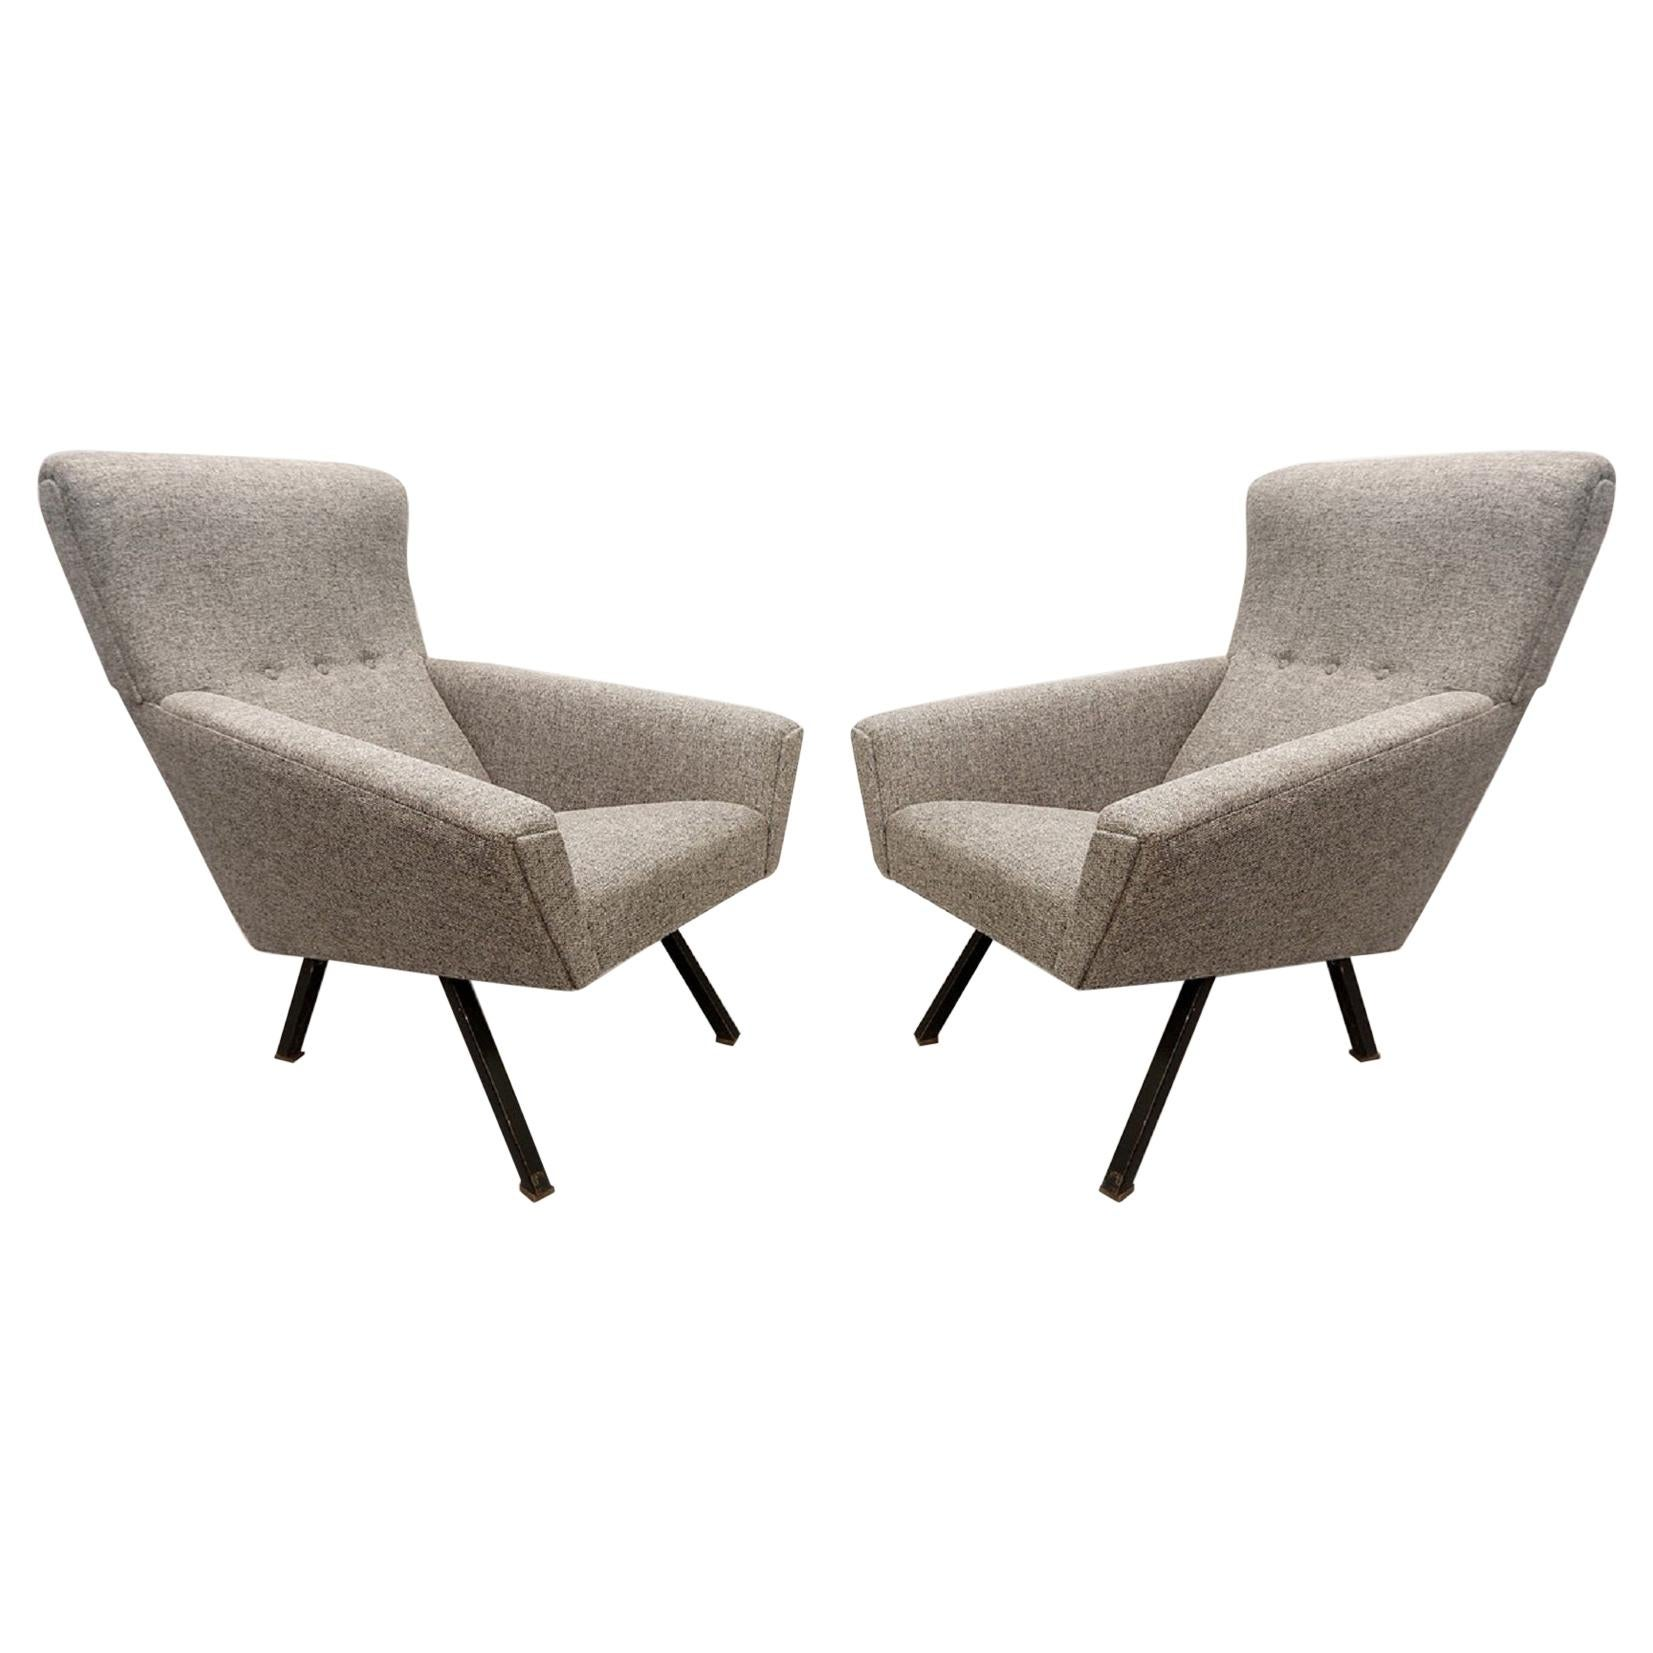 Pair of Italian Comfortable Armchairs with High Backs, New Upholstery